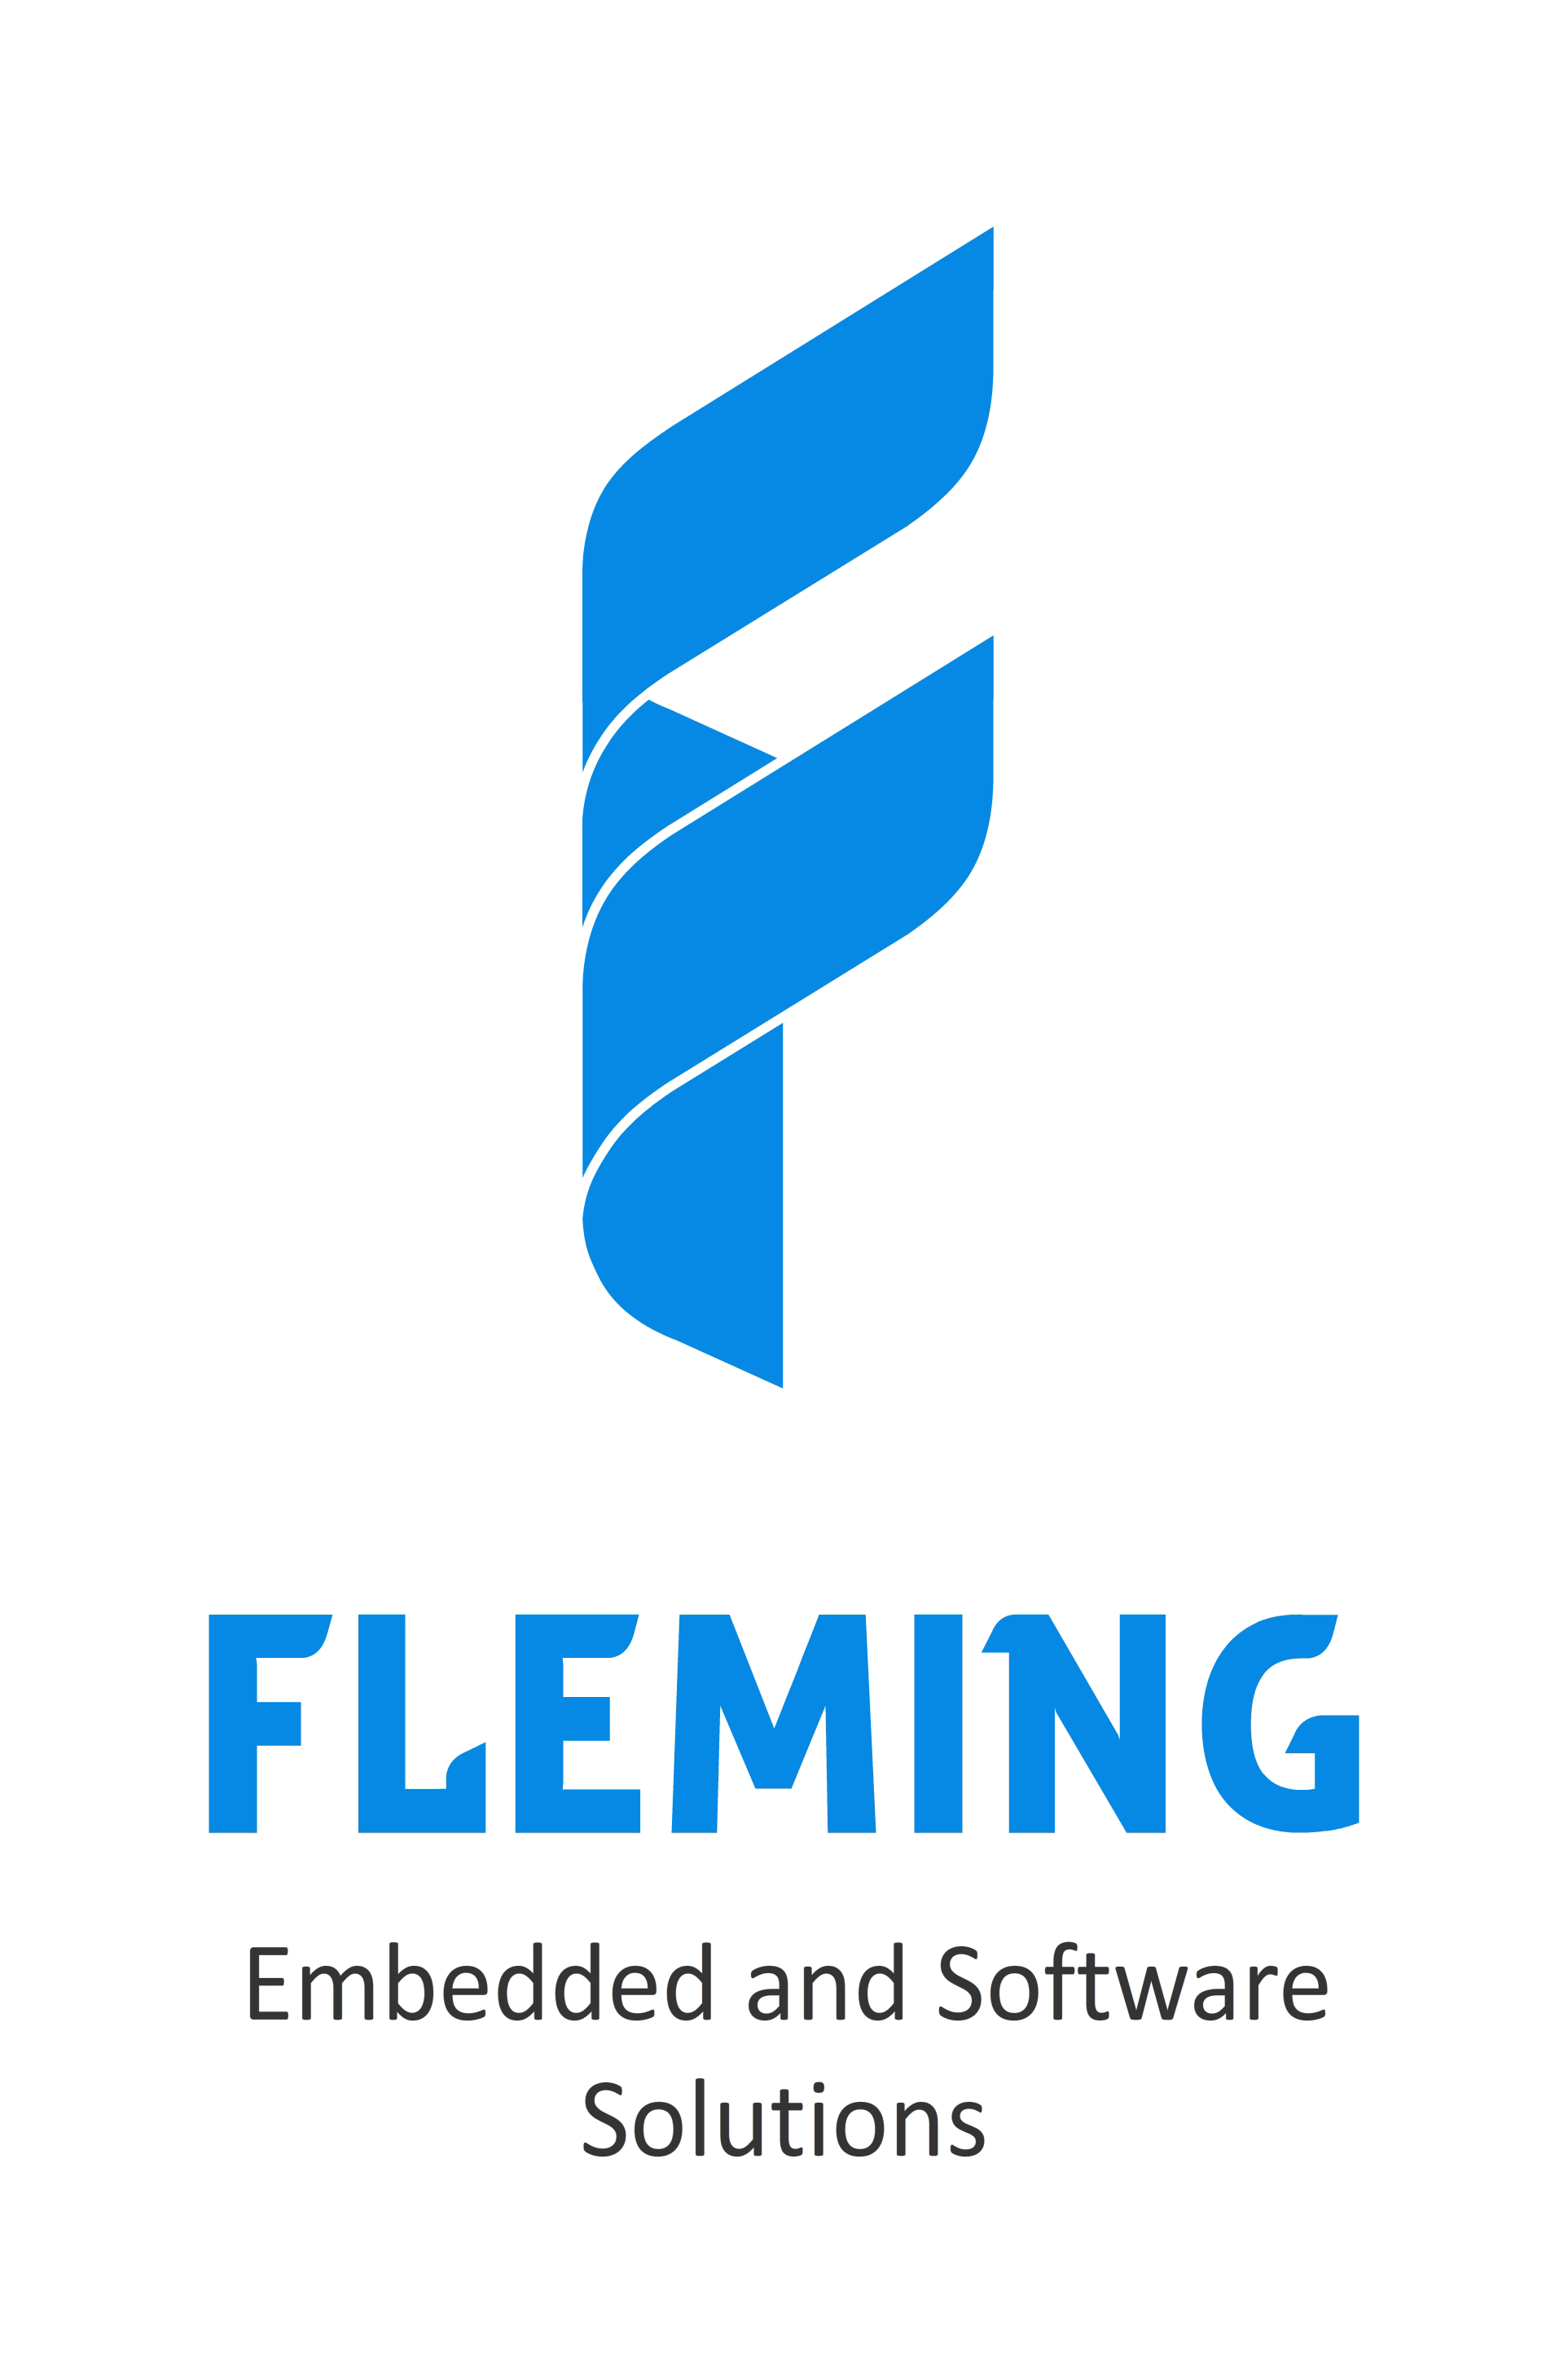 http://www.cognizjobs.com/company/fleming-embedded-and-software-solutions-llp